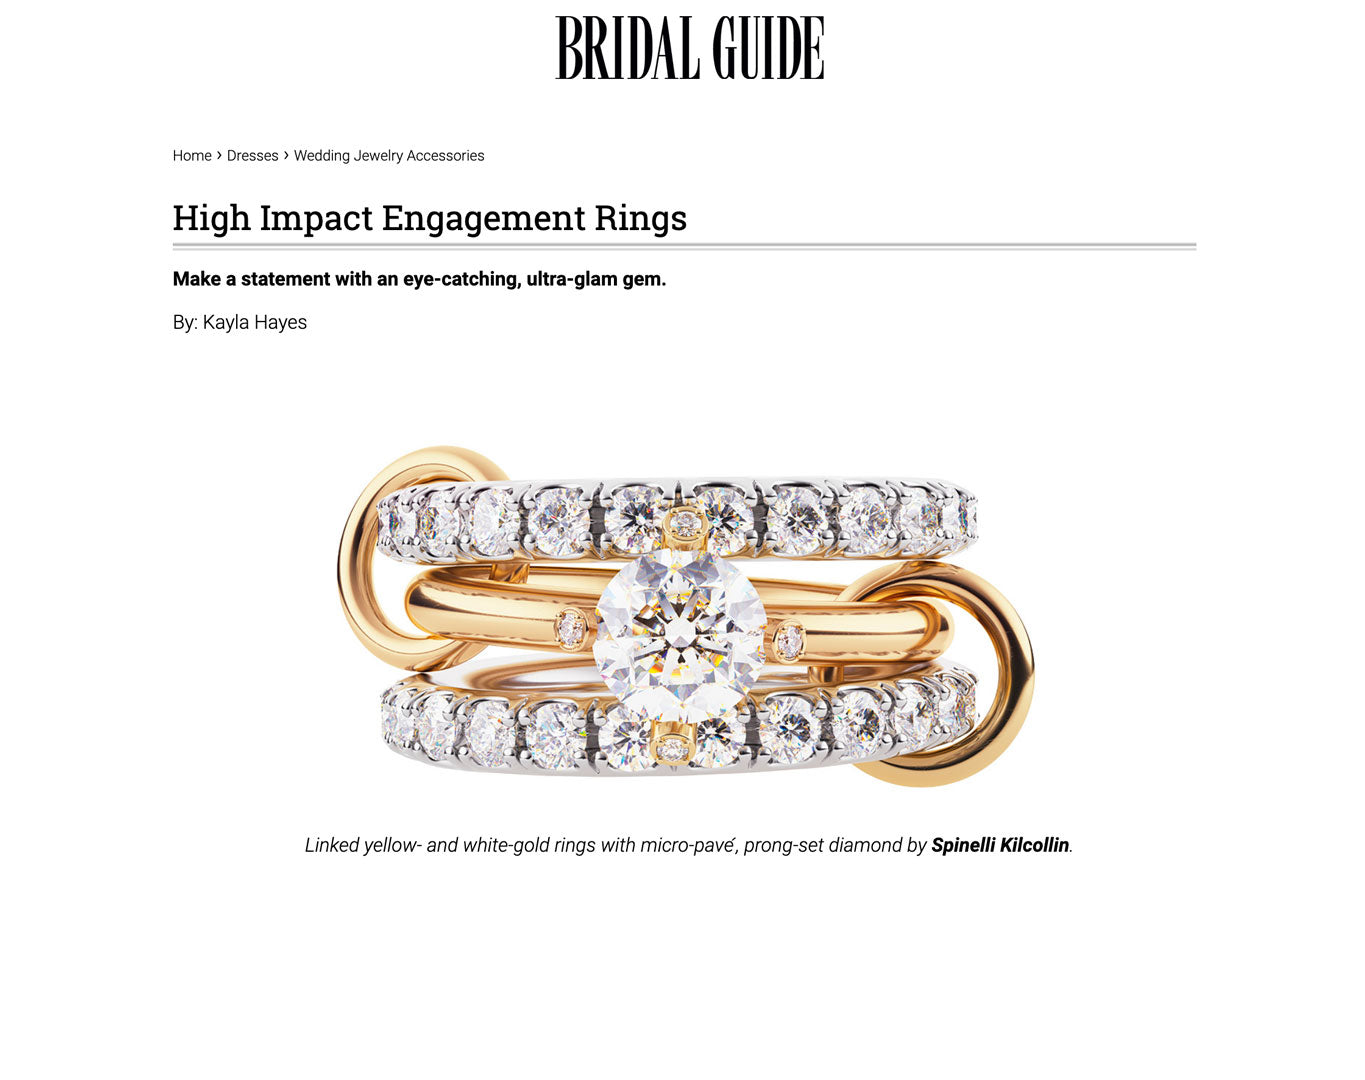 bridal guide spinelli kilcollin luxury-jewelry linked-rings pave-diamond